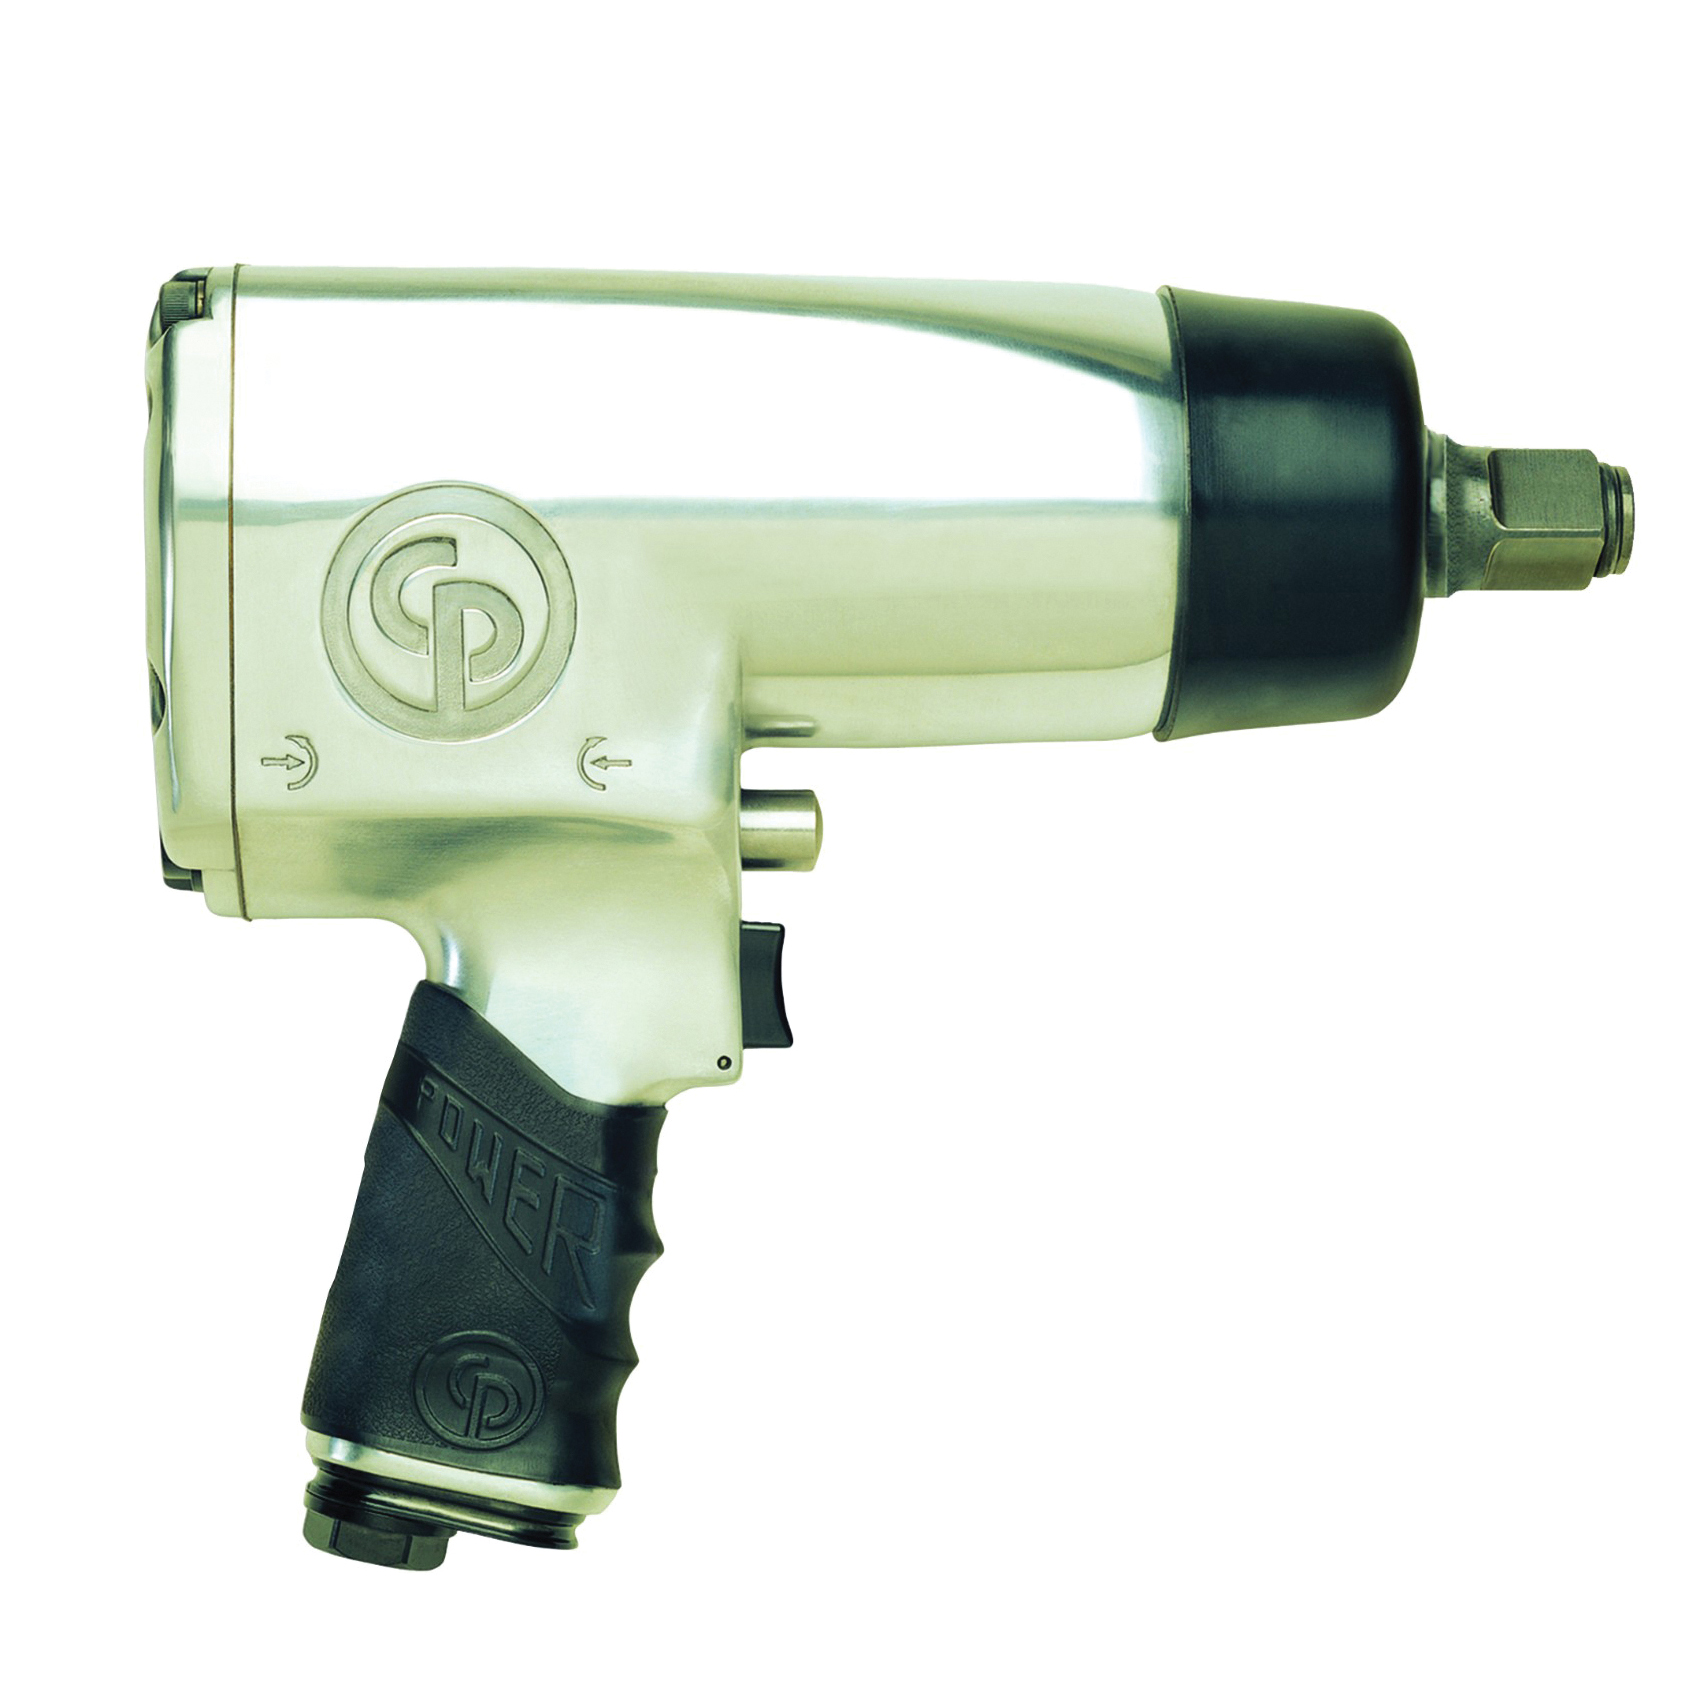 CP T024598 Impact Wrench, 3/4 in Drive, 203 to 949 N-m Forward/ 1356 N-m Reverse Torque, 24 cfm Air Flow, 9.63 in OAL